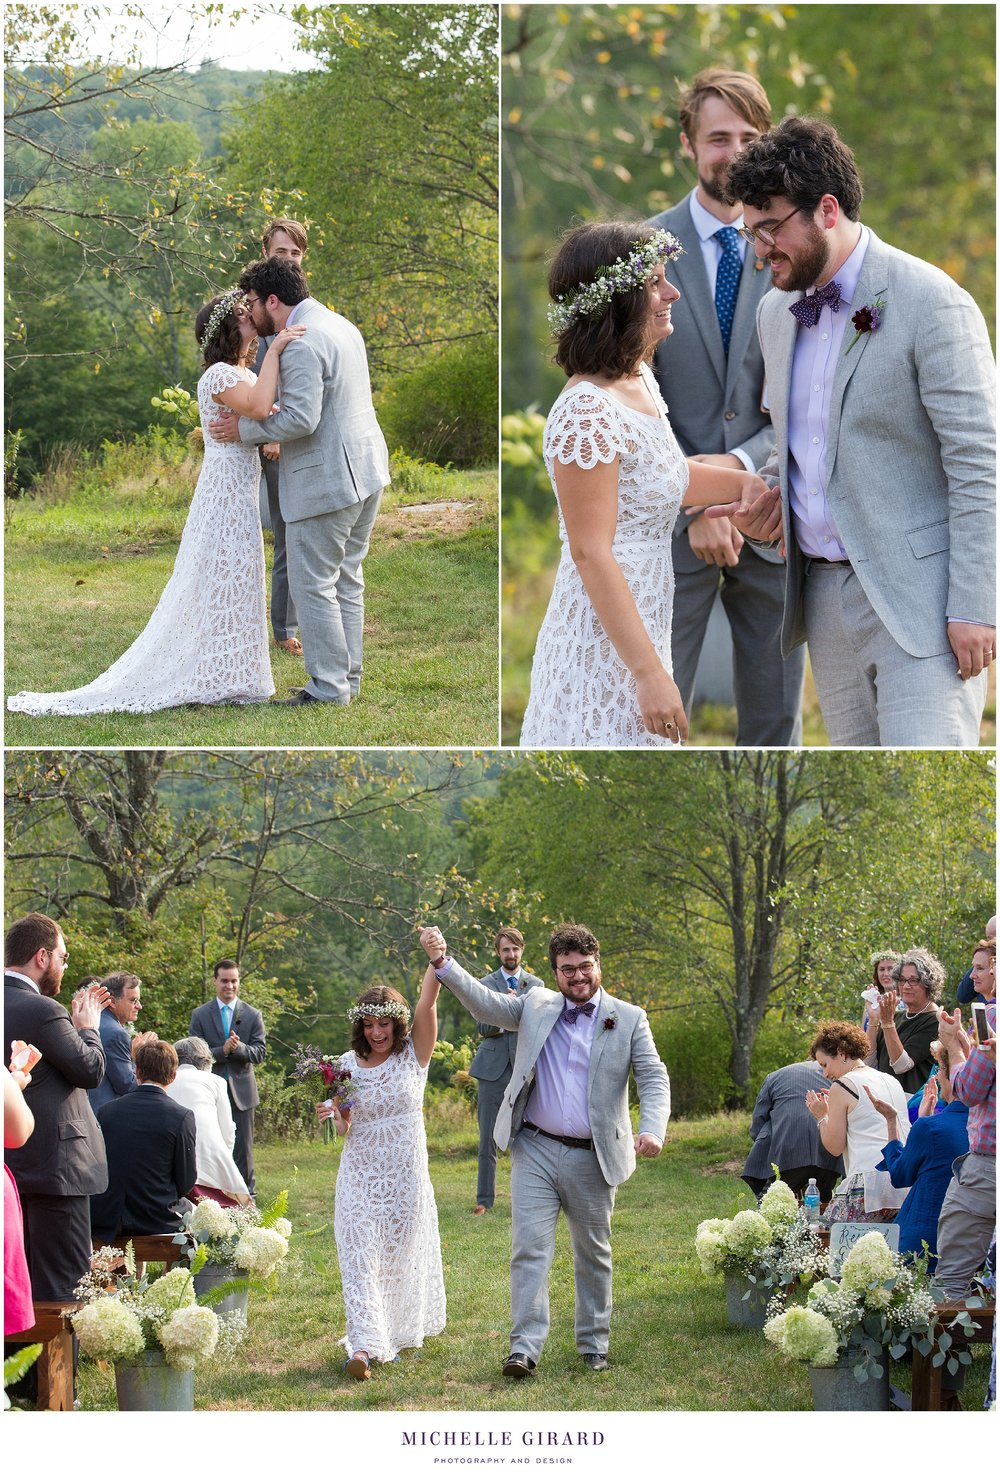 RusticWedding_MaplewoodFamilyFarm_MountainTopCeremony_MichelleGirardPhotography16.jpg